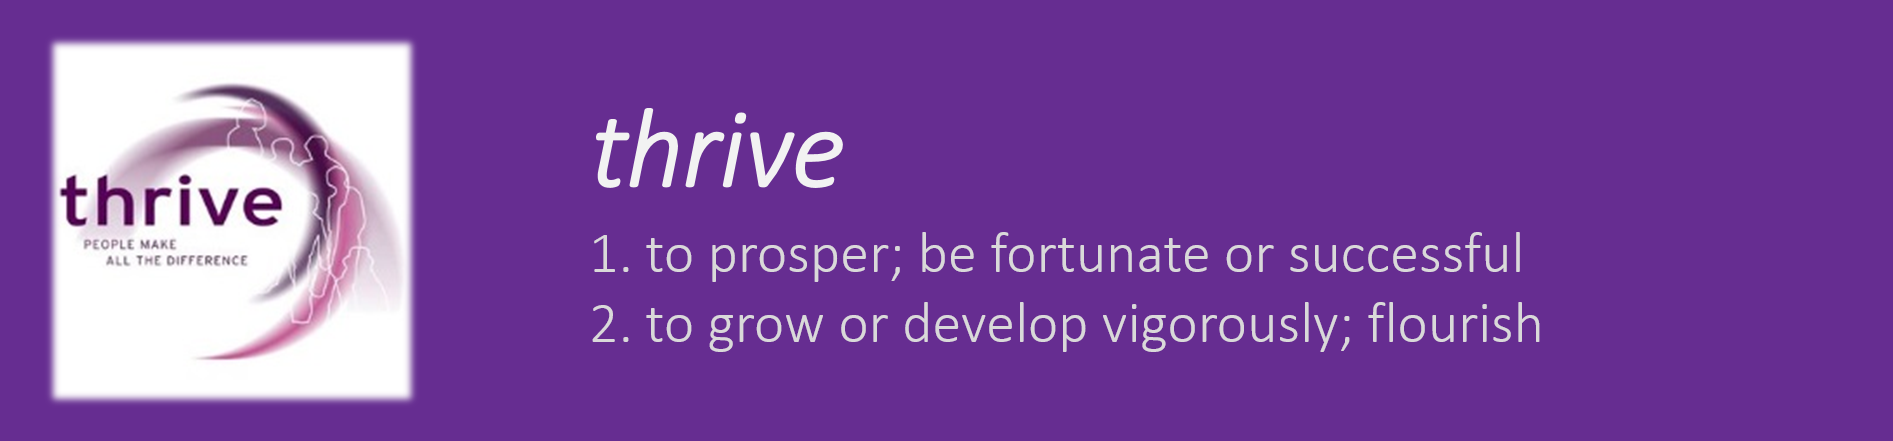 thrive definition